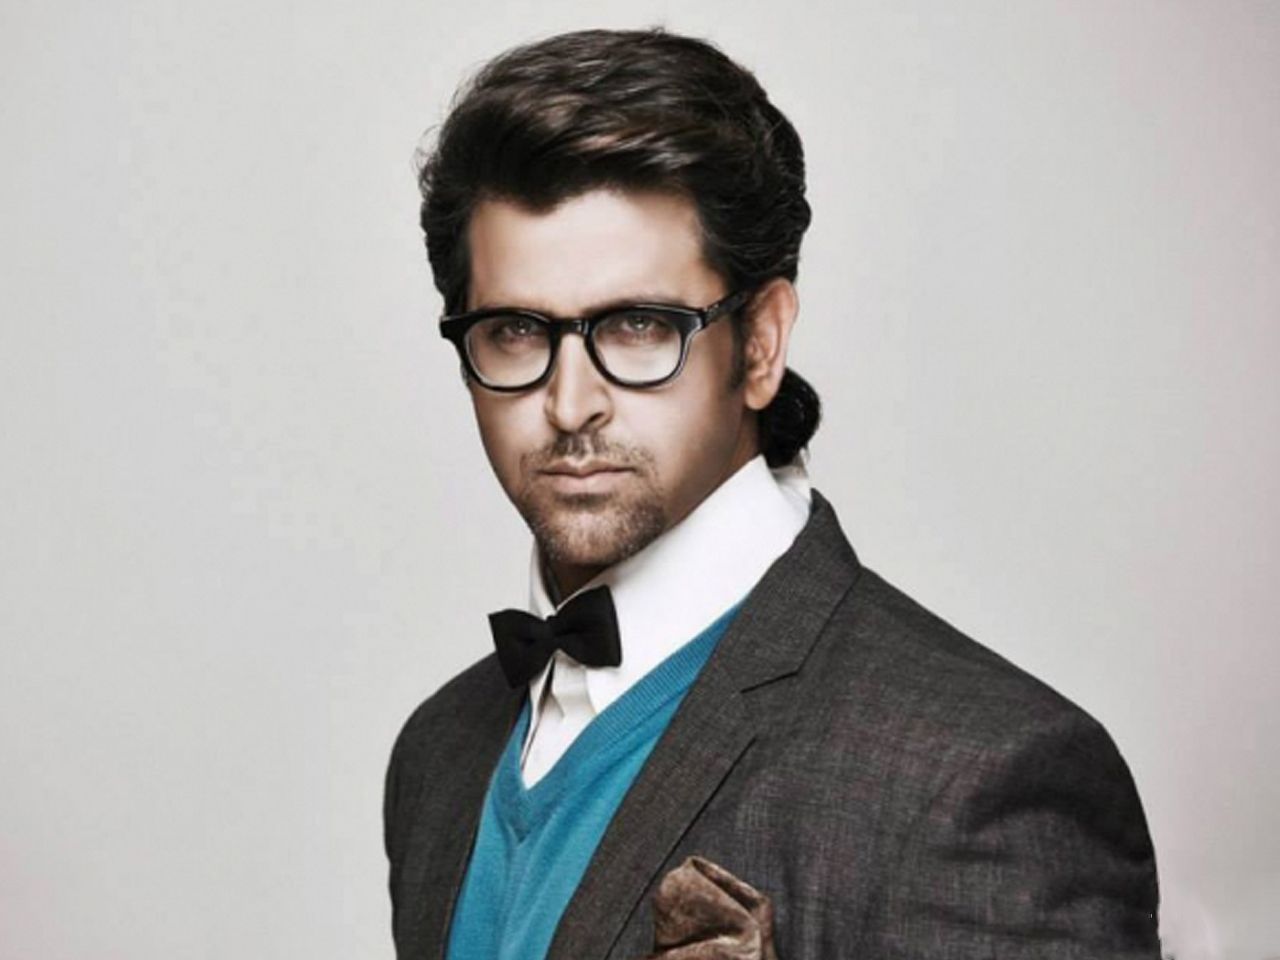 Hrithik Roshan Long Hairstyle Which Looks Great With A Cute Summer Dress If You Are Also Looking Something Di Bollywood Actors Actors Hrithik Roshan Hairstyle